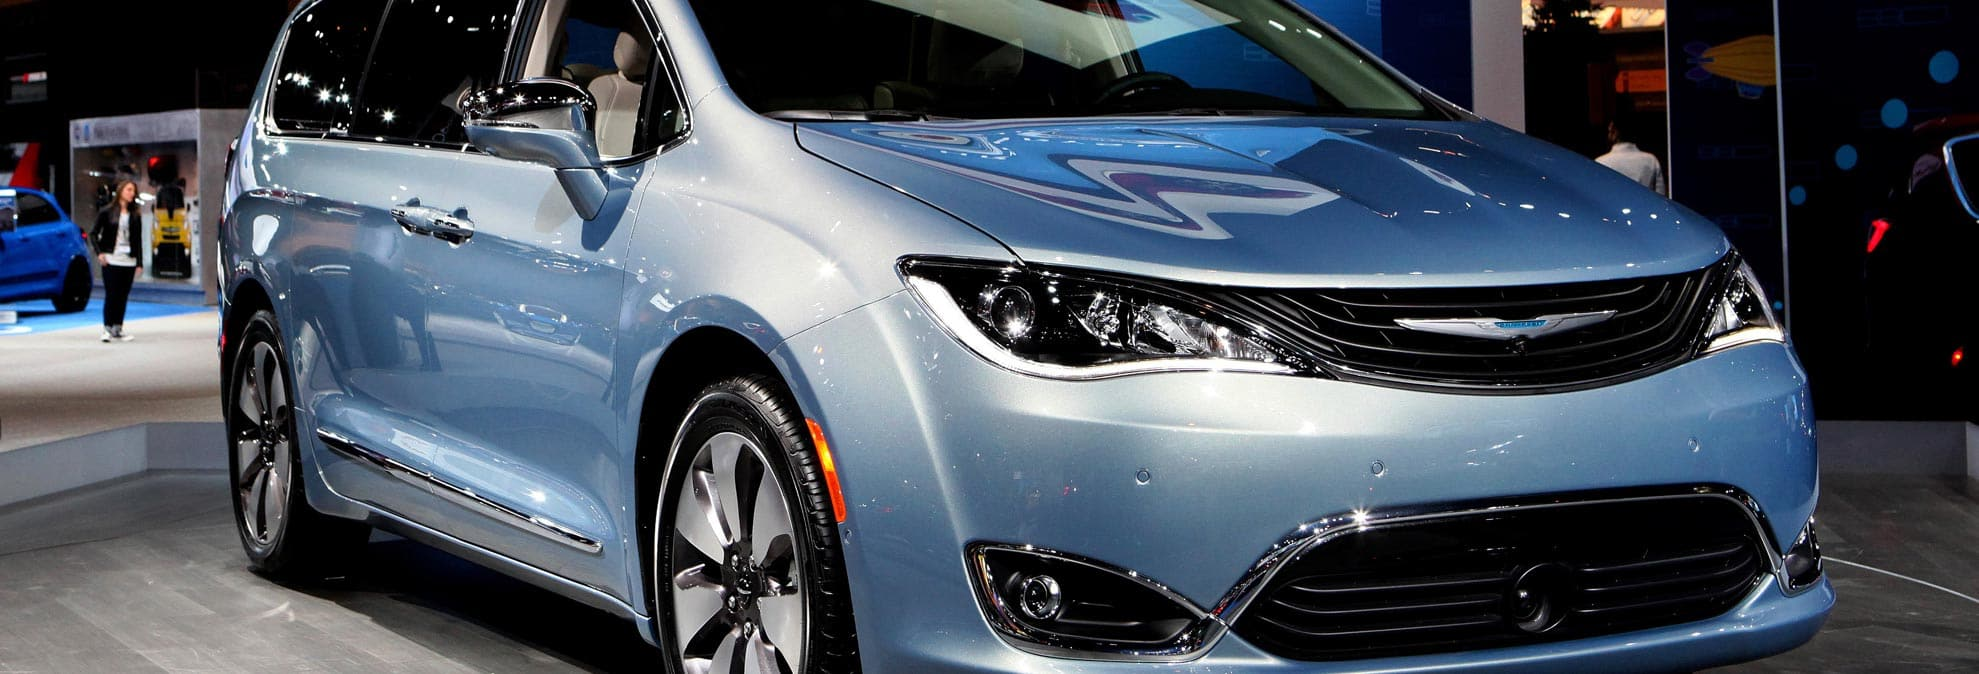 consumer reports car buying guide 2017